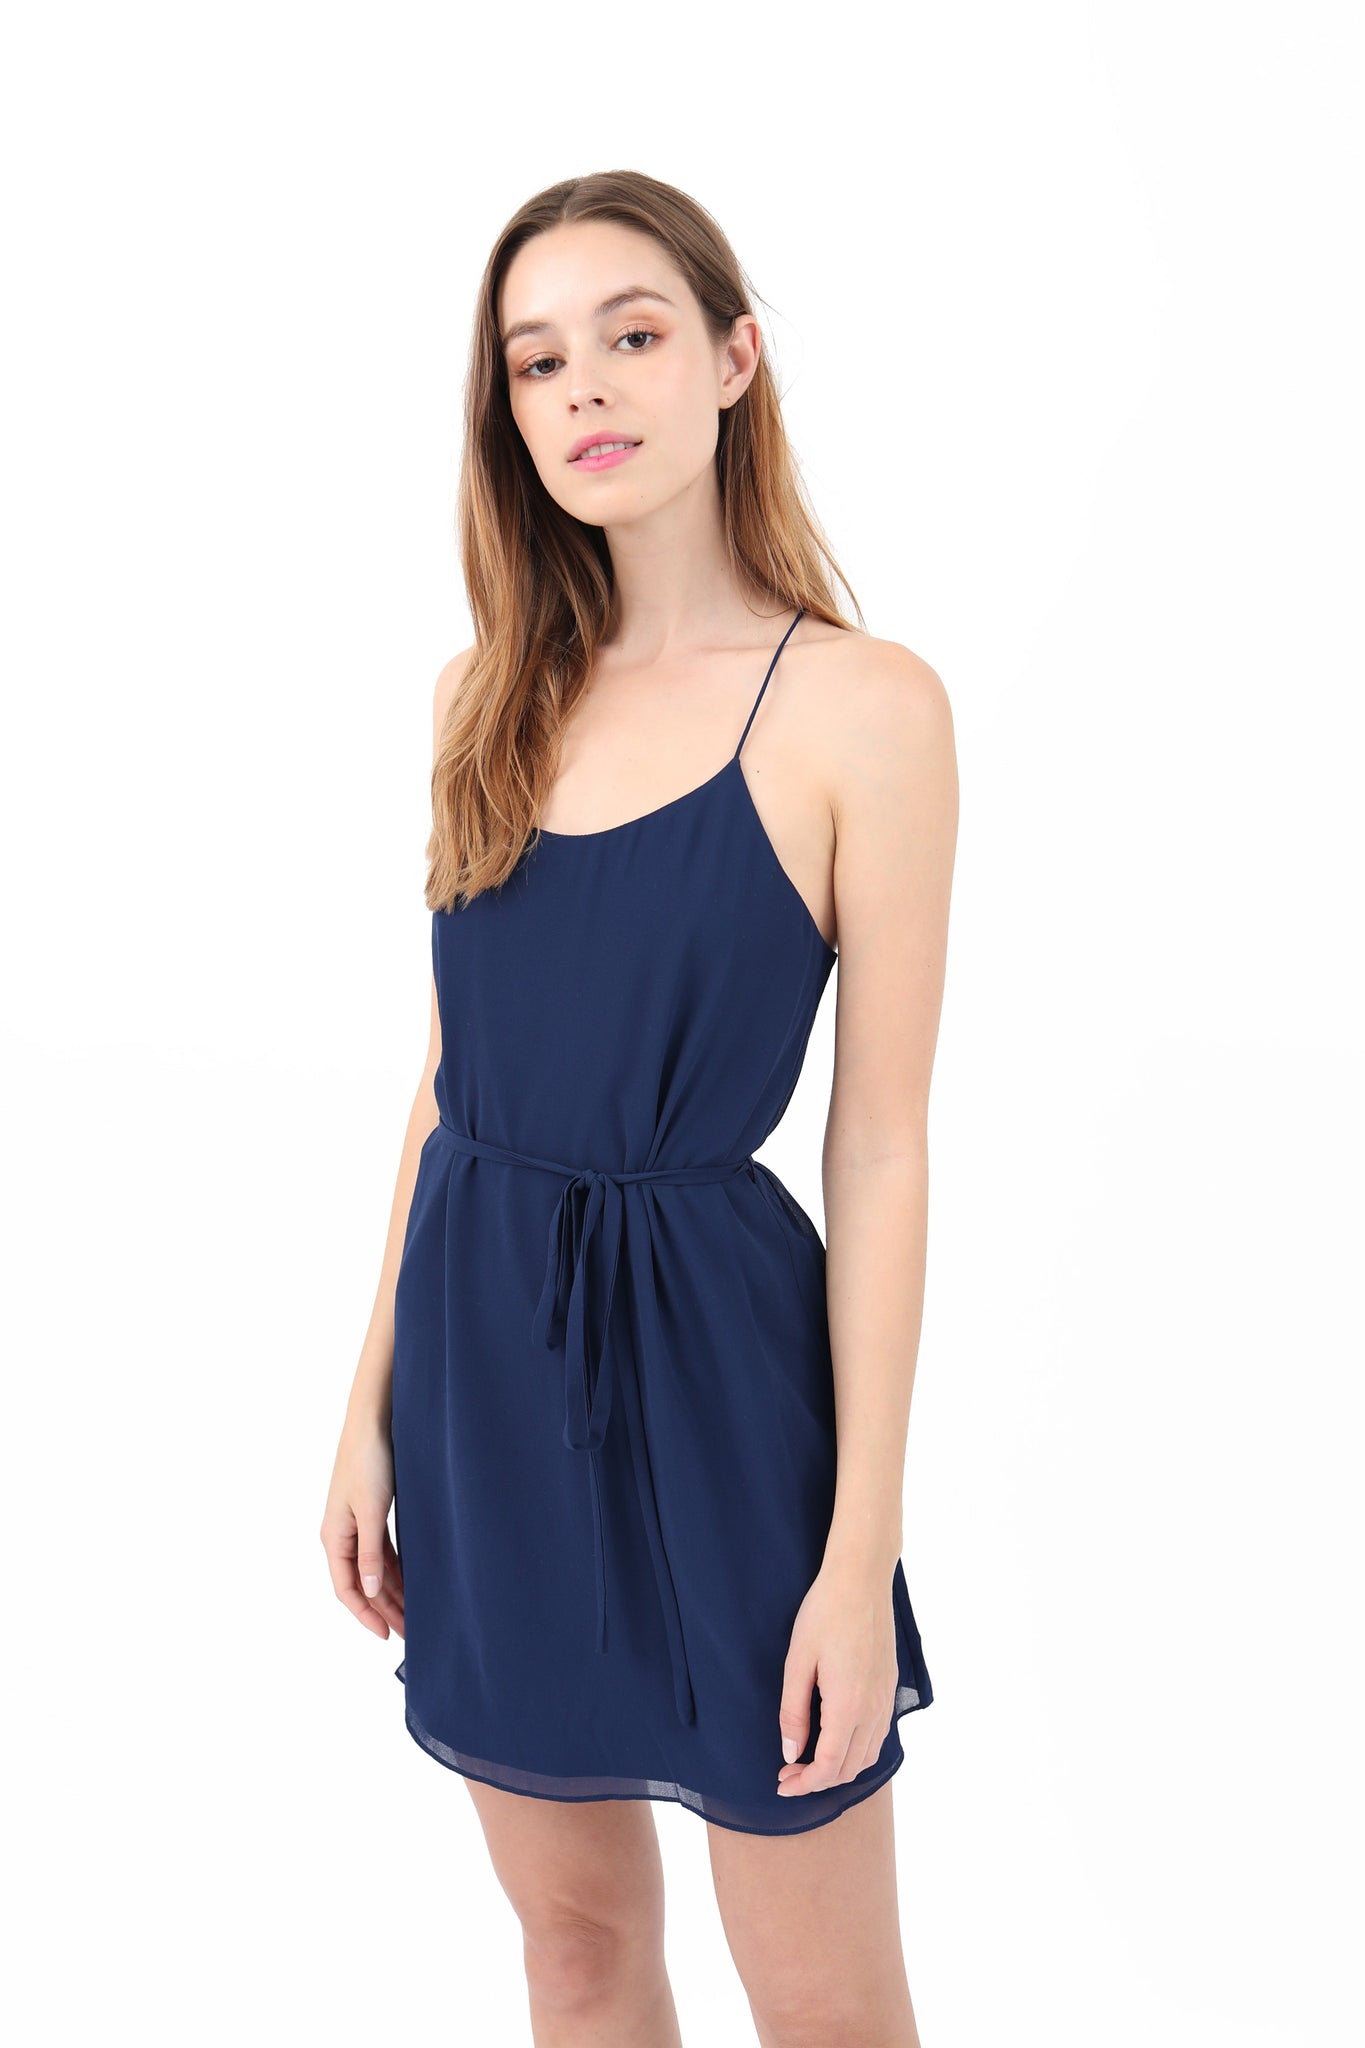 Waist Tie Mini Dress